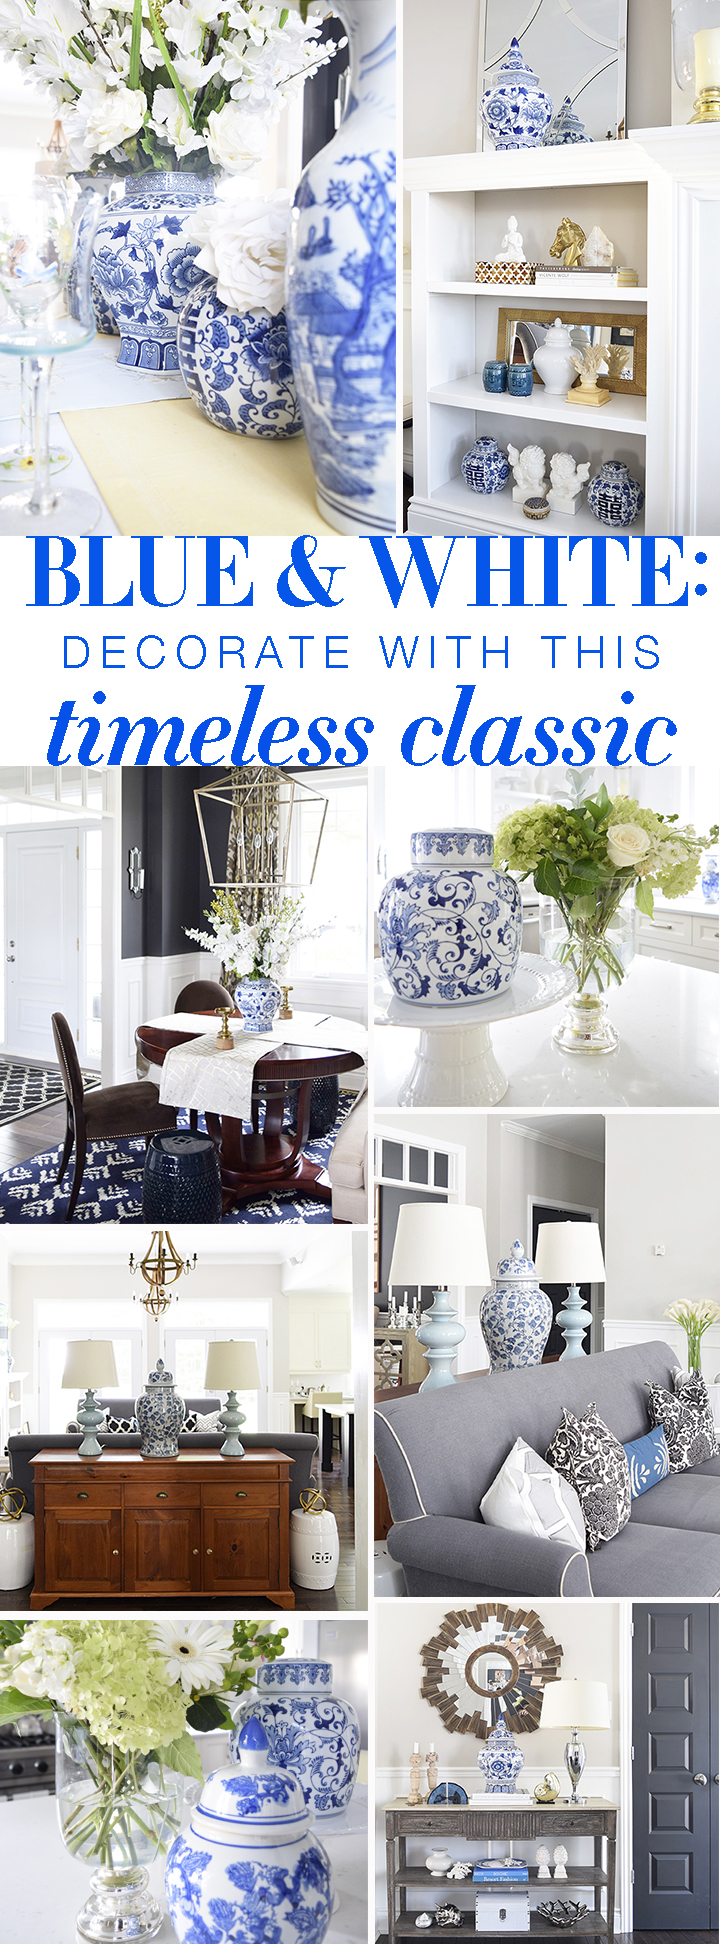 Decorating With Blue And White!